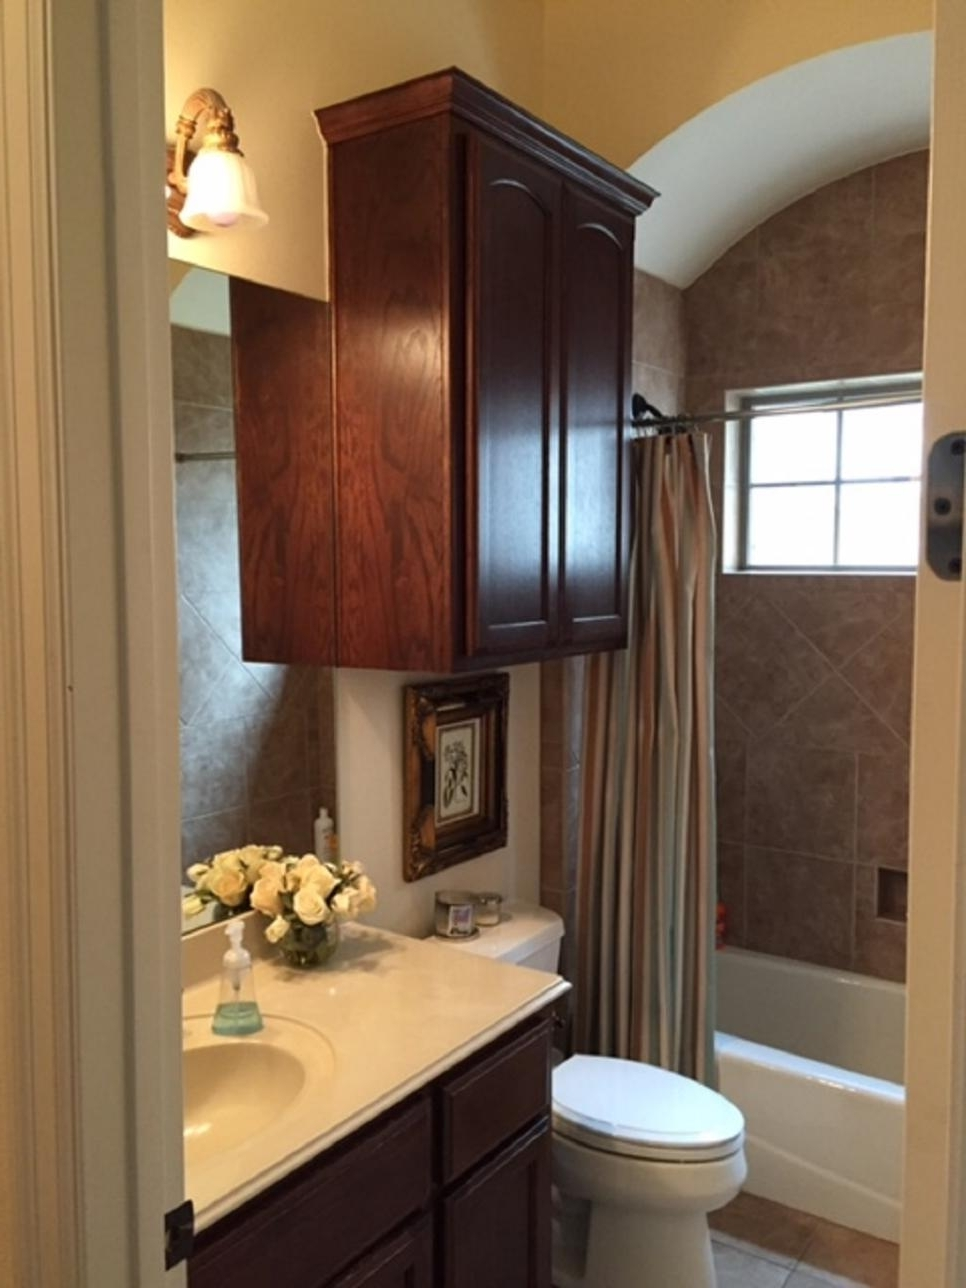 Cheap ways to improve your bathroom custom home design Cheap bathroom remodel before and after